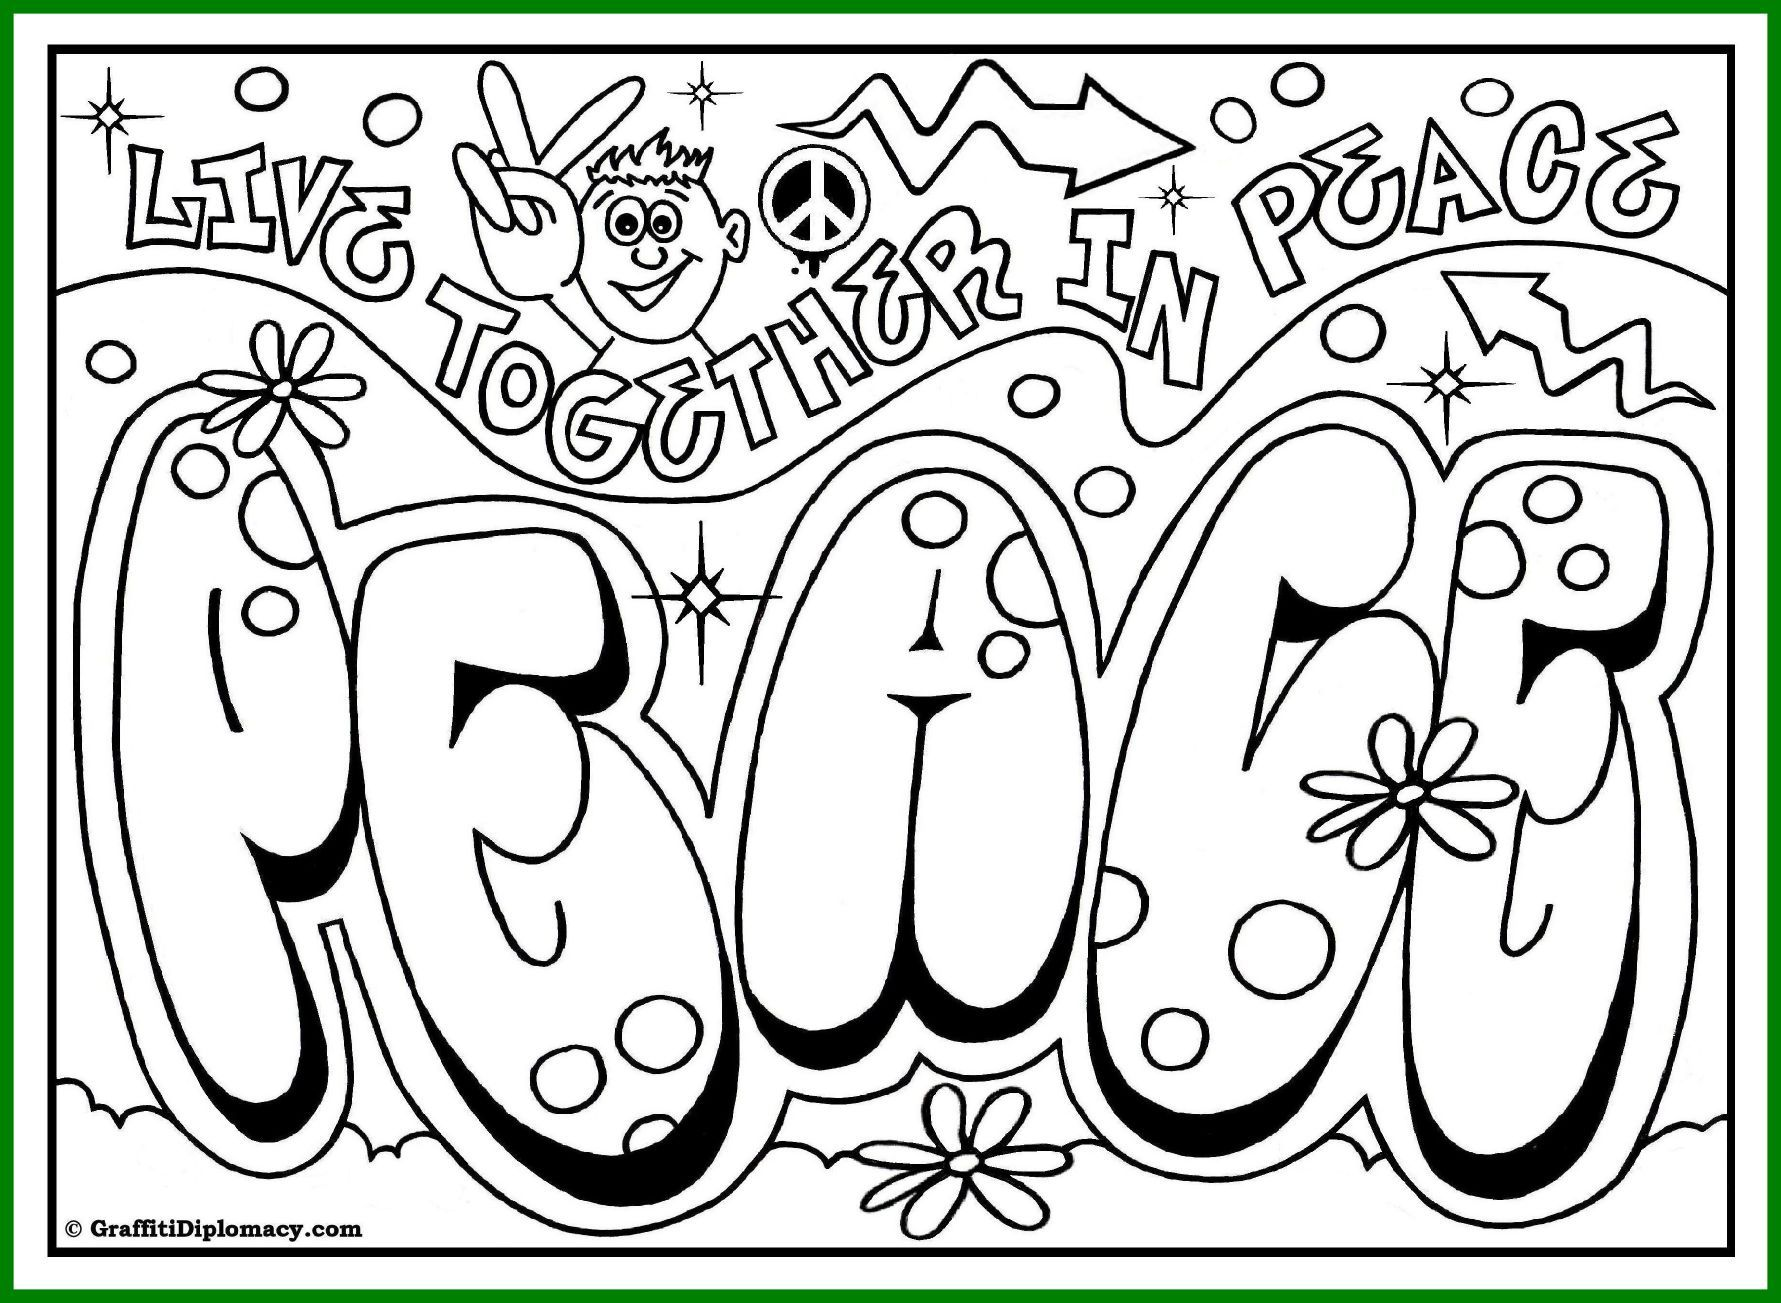 1781x1303 Inspiring Bubble Letter A Coloring Pages Fototo Me For Disney